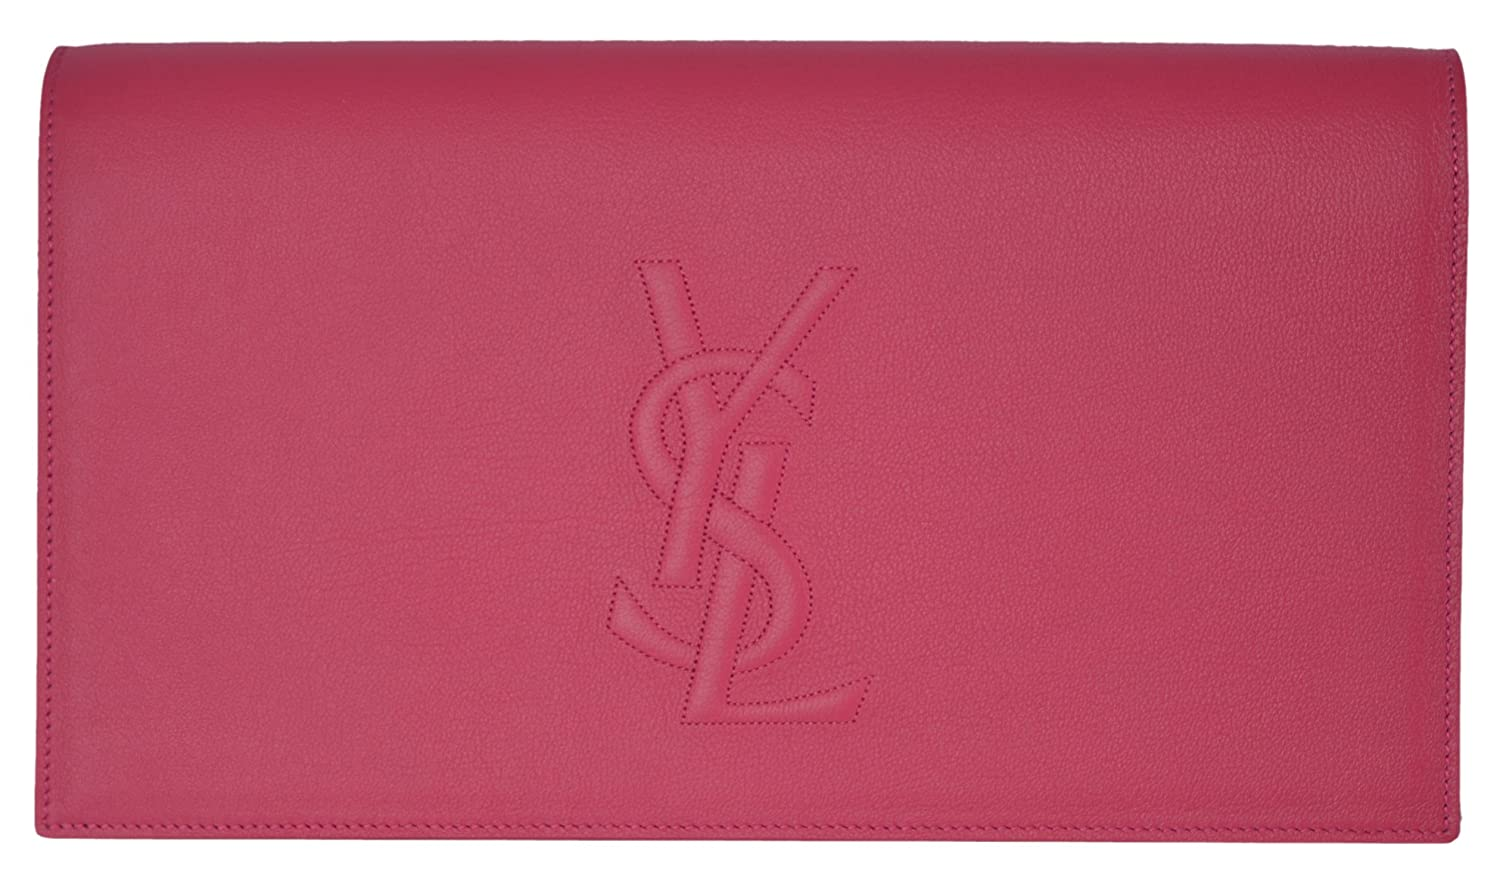 Yves Saint Laurent YSL Pink Leather Large Belle de Jour Clutch